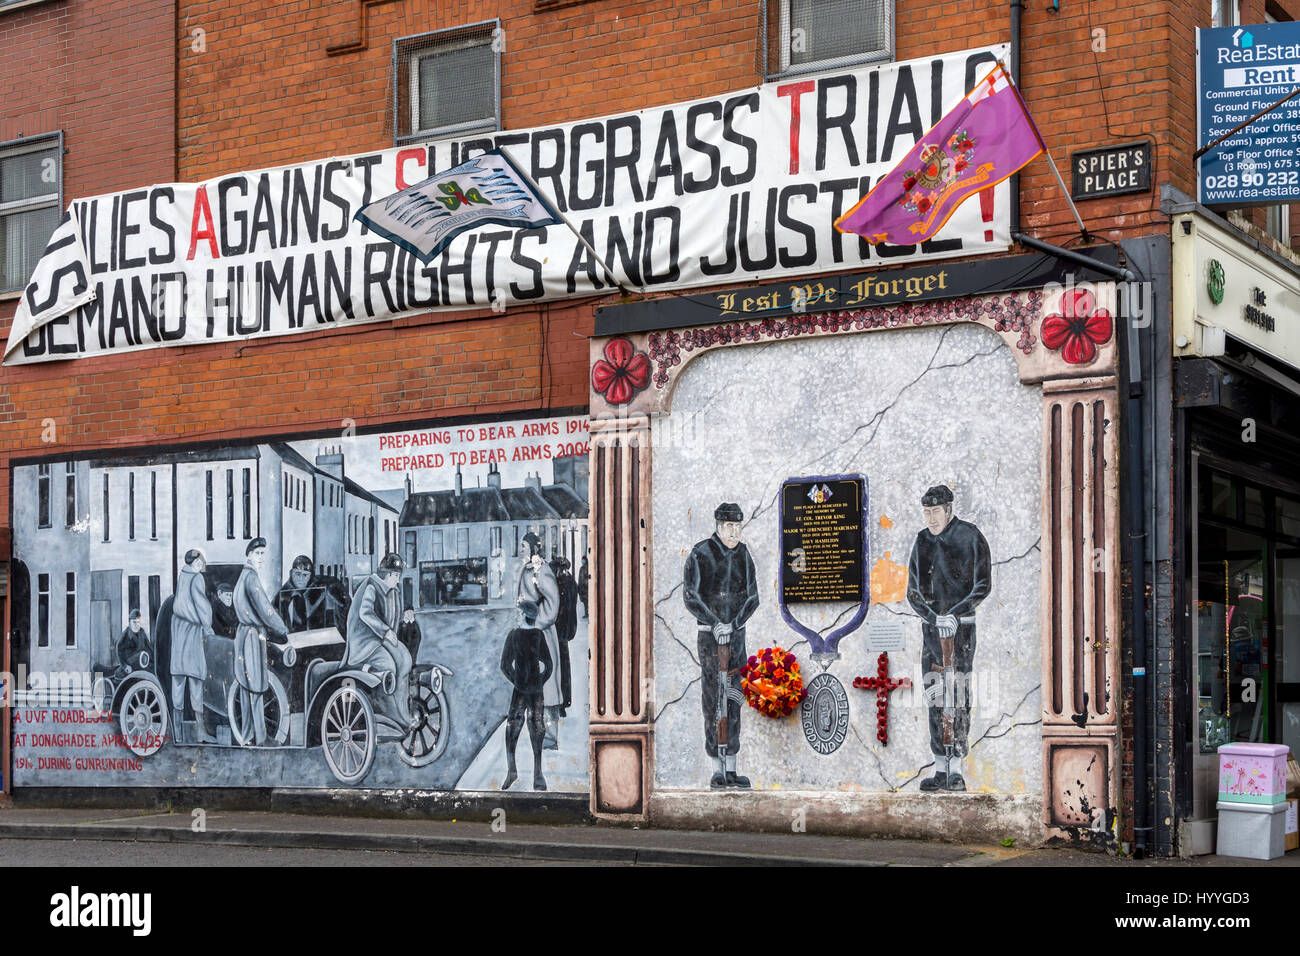 Loyalist mural at Spier's Place, off Shankill Rd., Belfast, County Antrim, Northern Ireland, UK - Stock Image